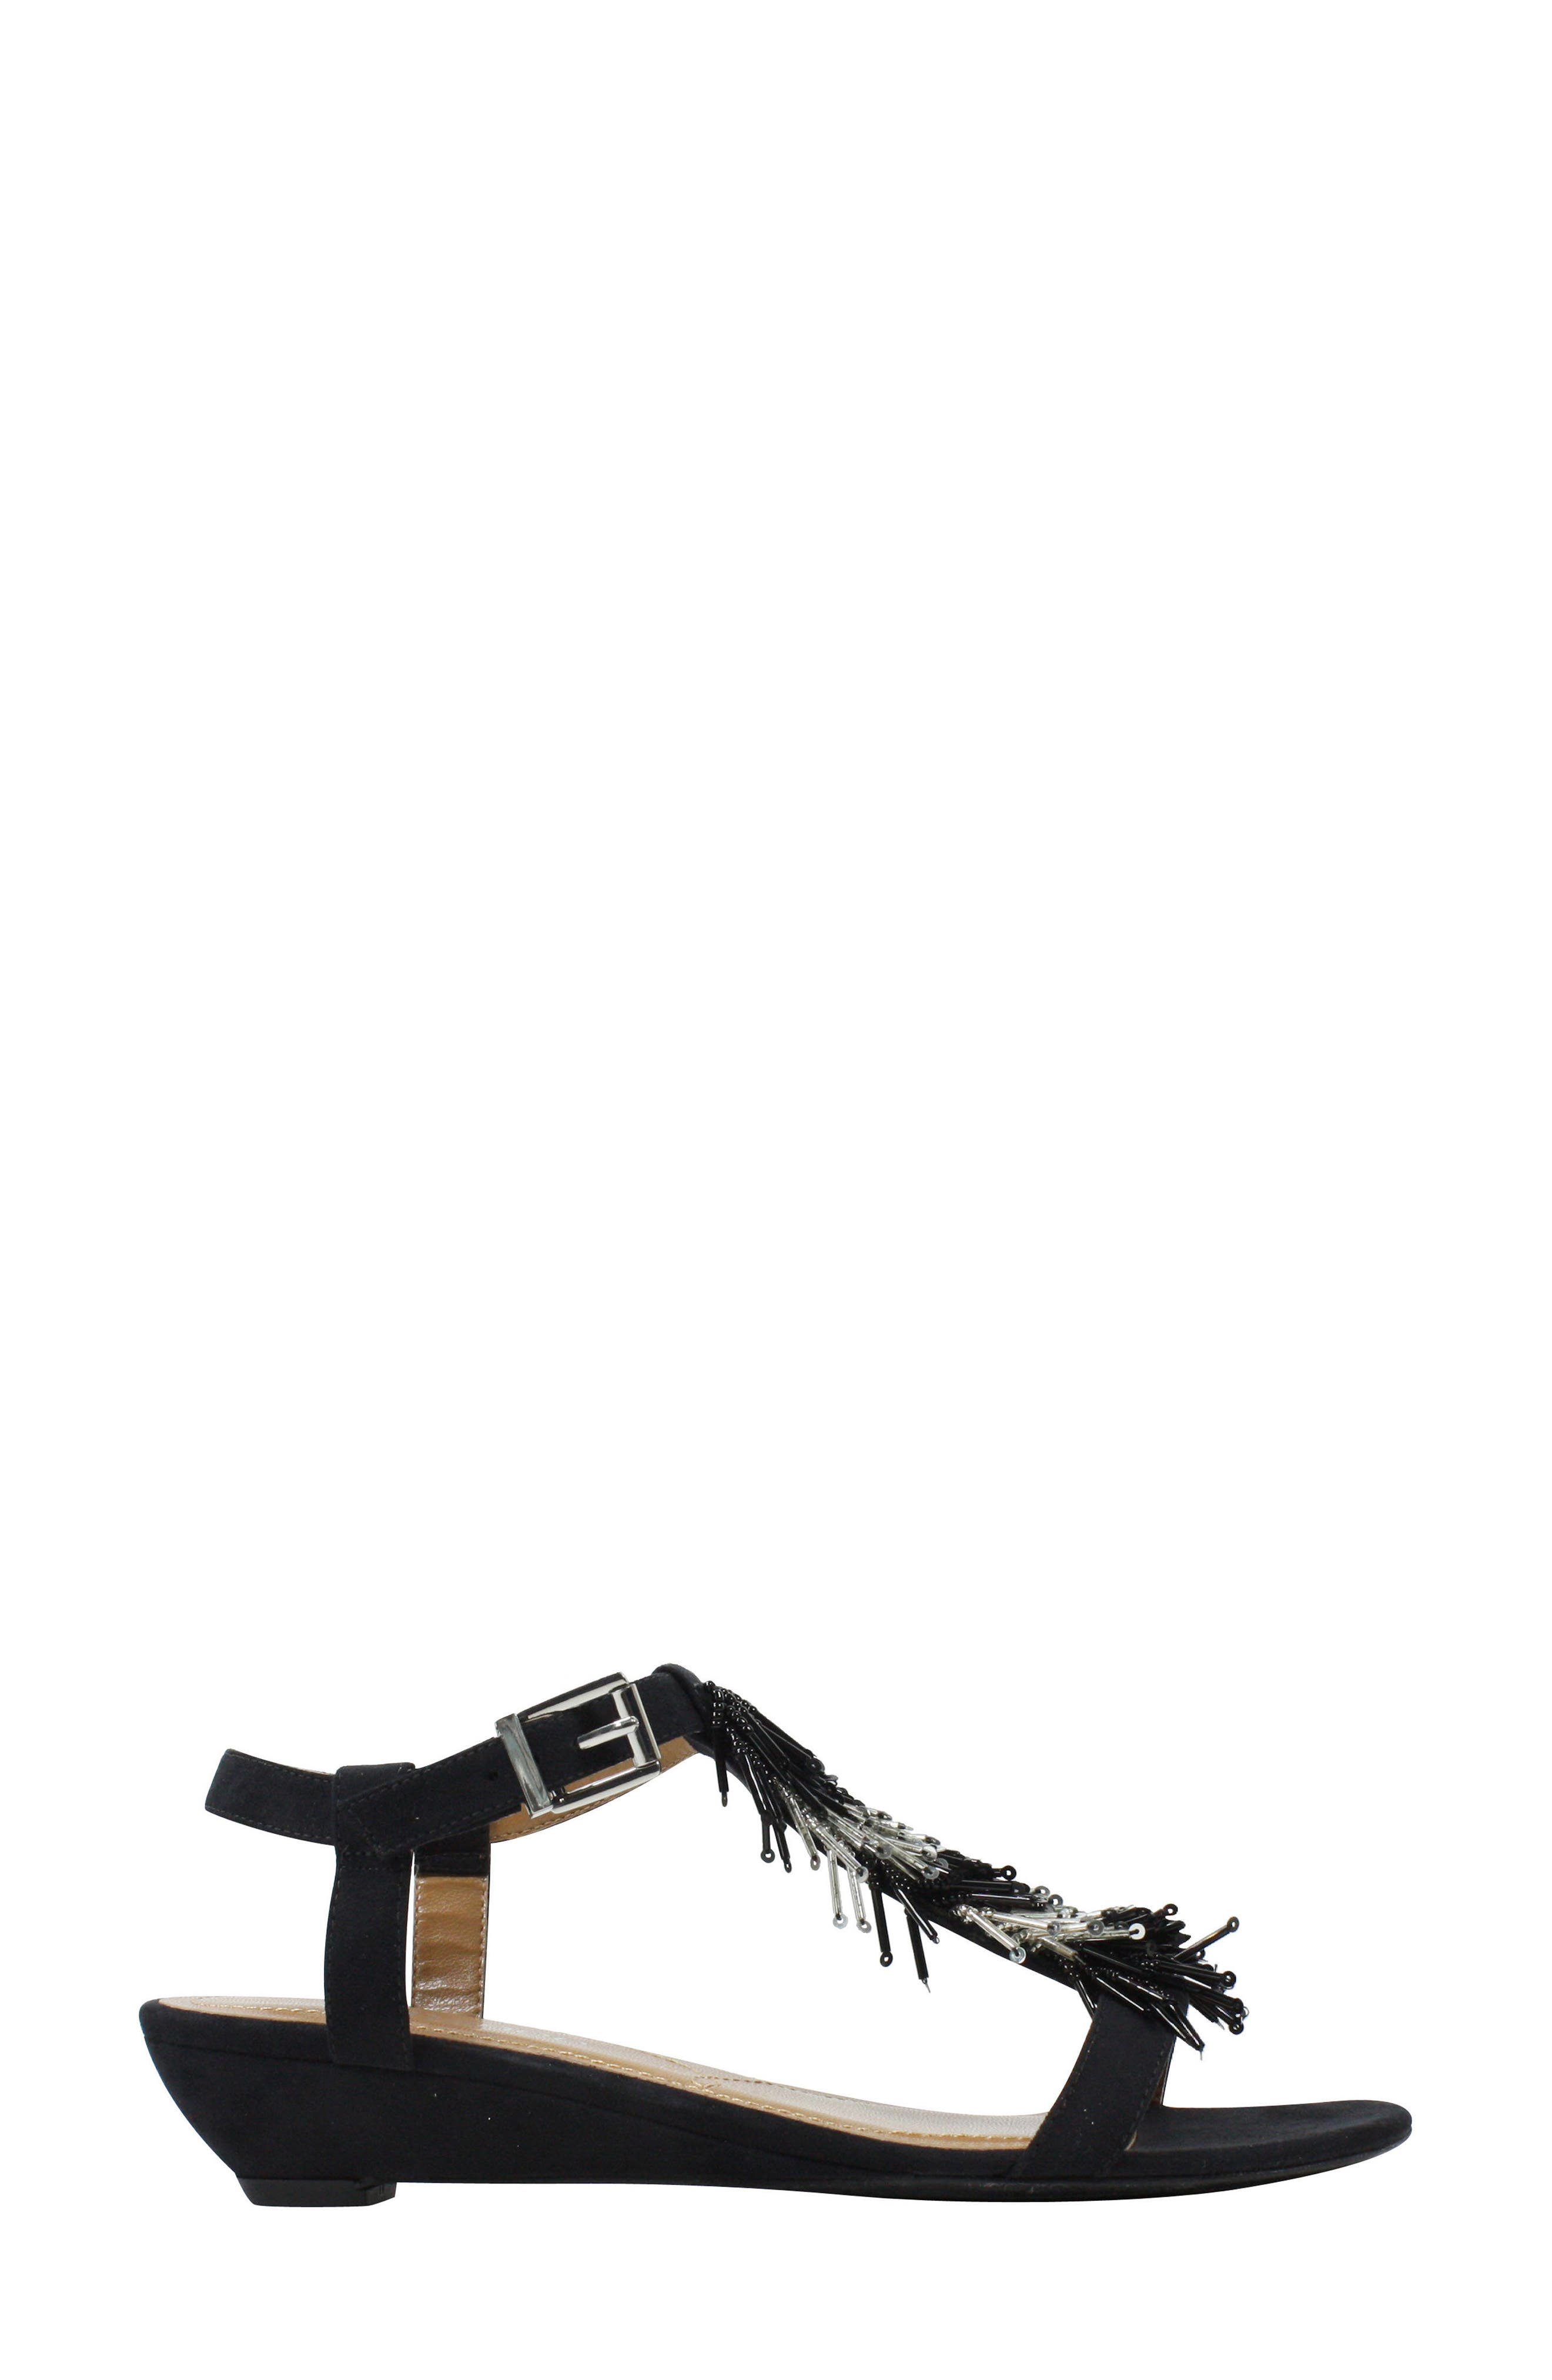 Alessa Sandal,                             Alternate thumbnail 3, color,                             BLACK/ SILVER FABRIC